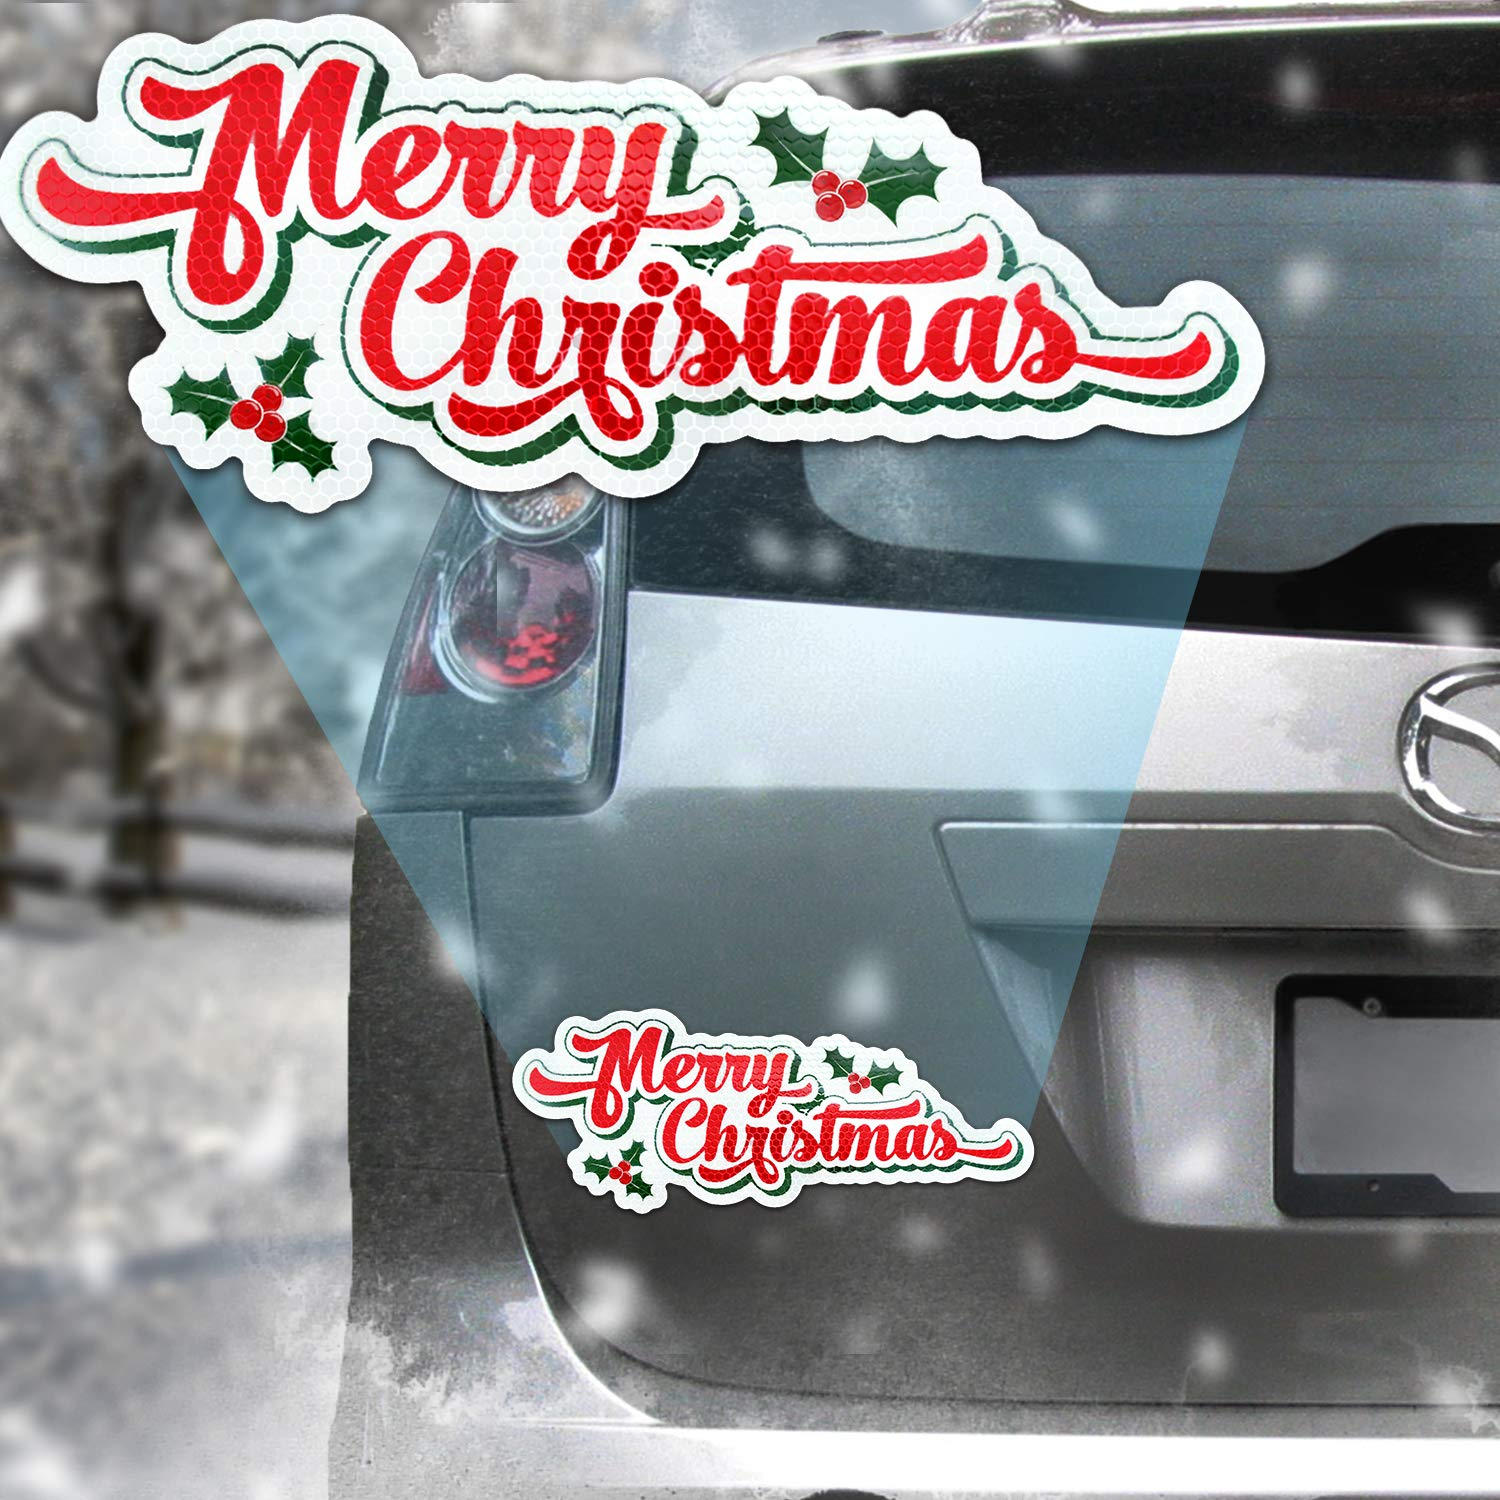 Bigtime Signs Jumbo Reflective Automotive Christmas Lights Magnet Set Fun Holiday Car Decorations Kit 12 pcs 2 of Each Color